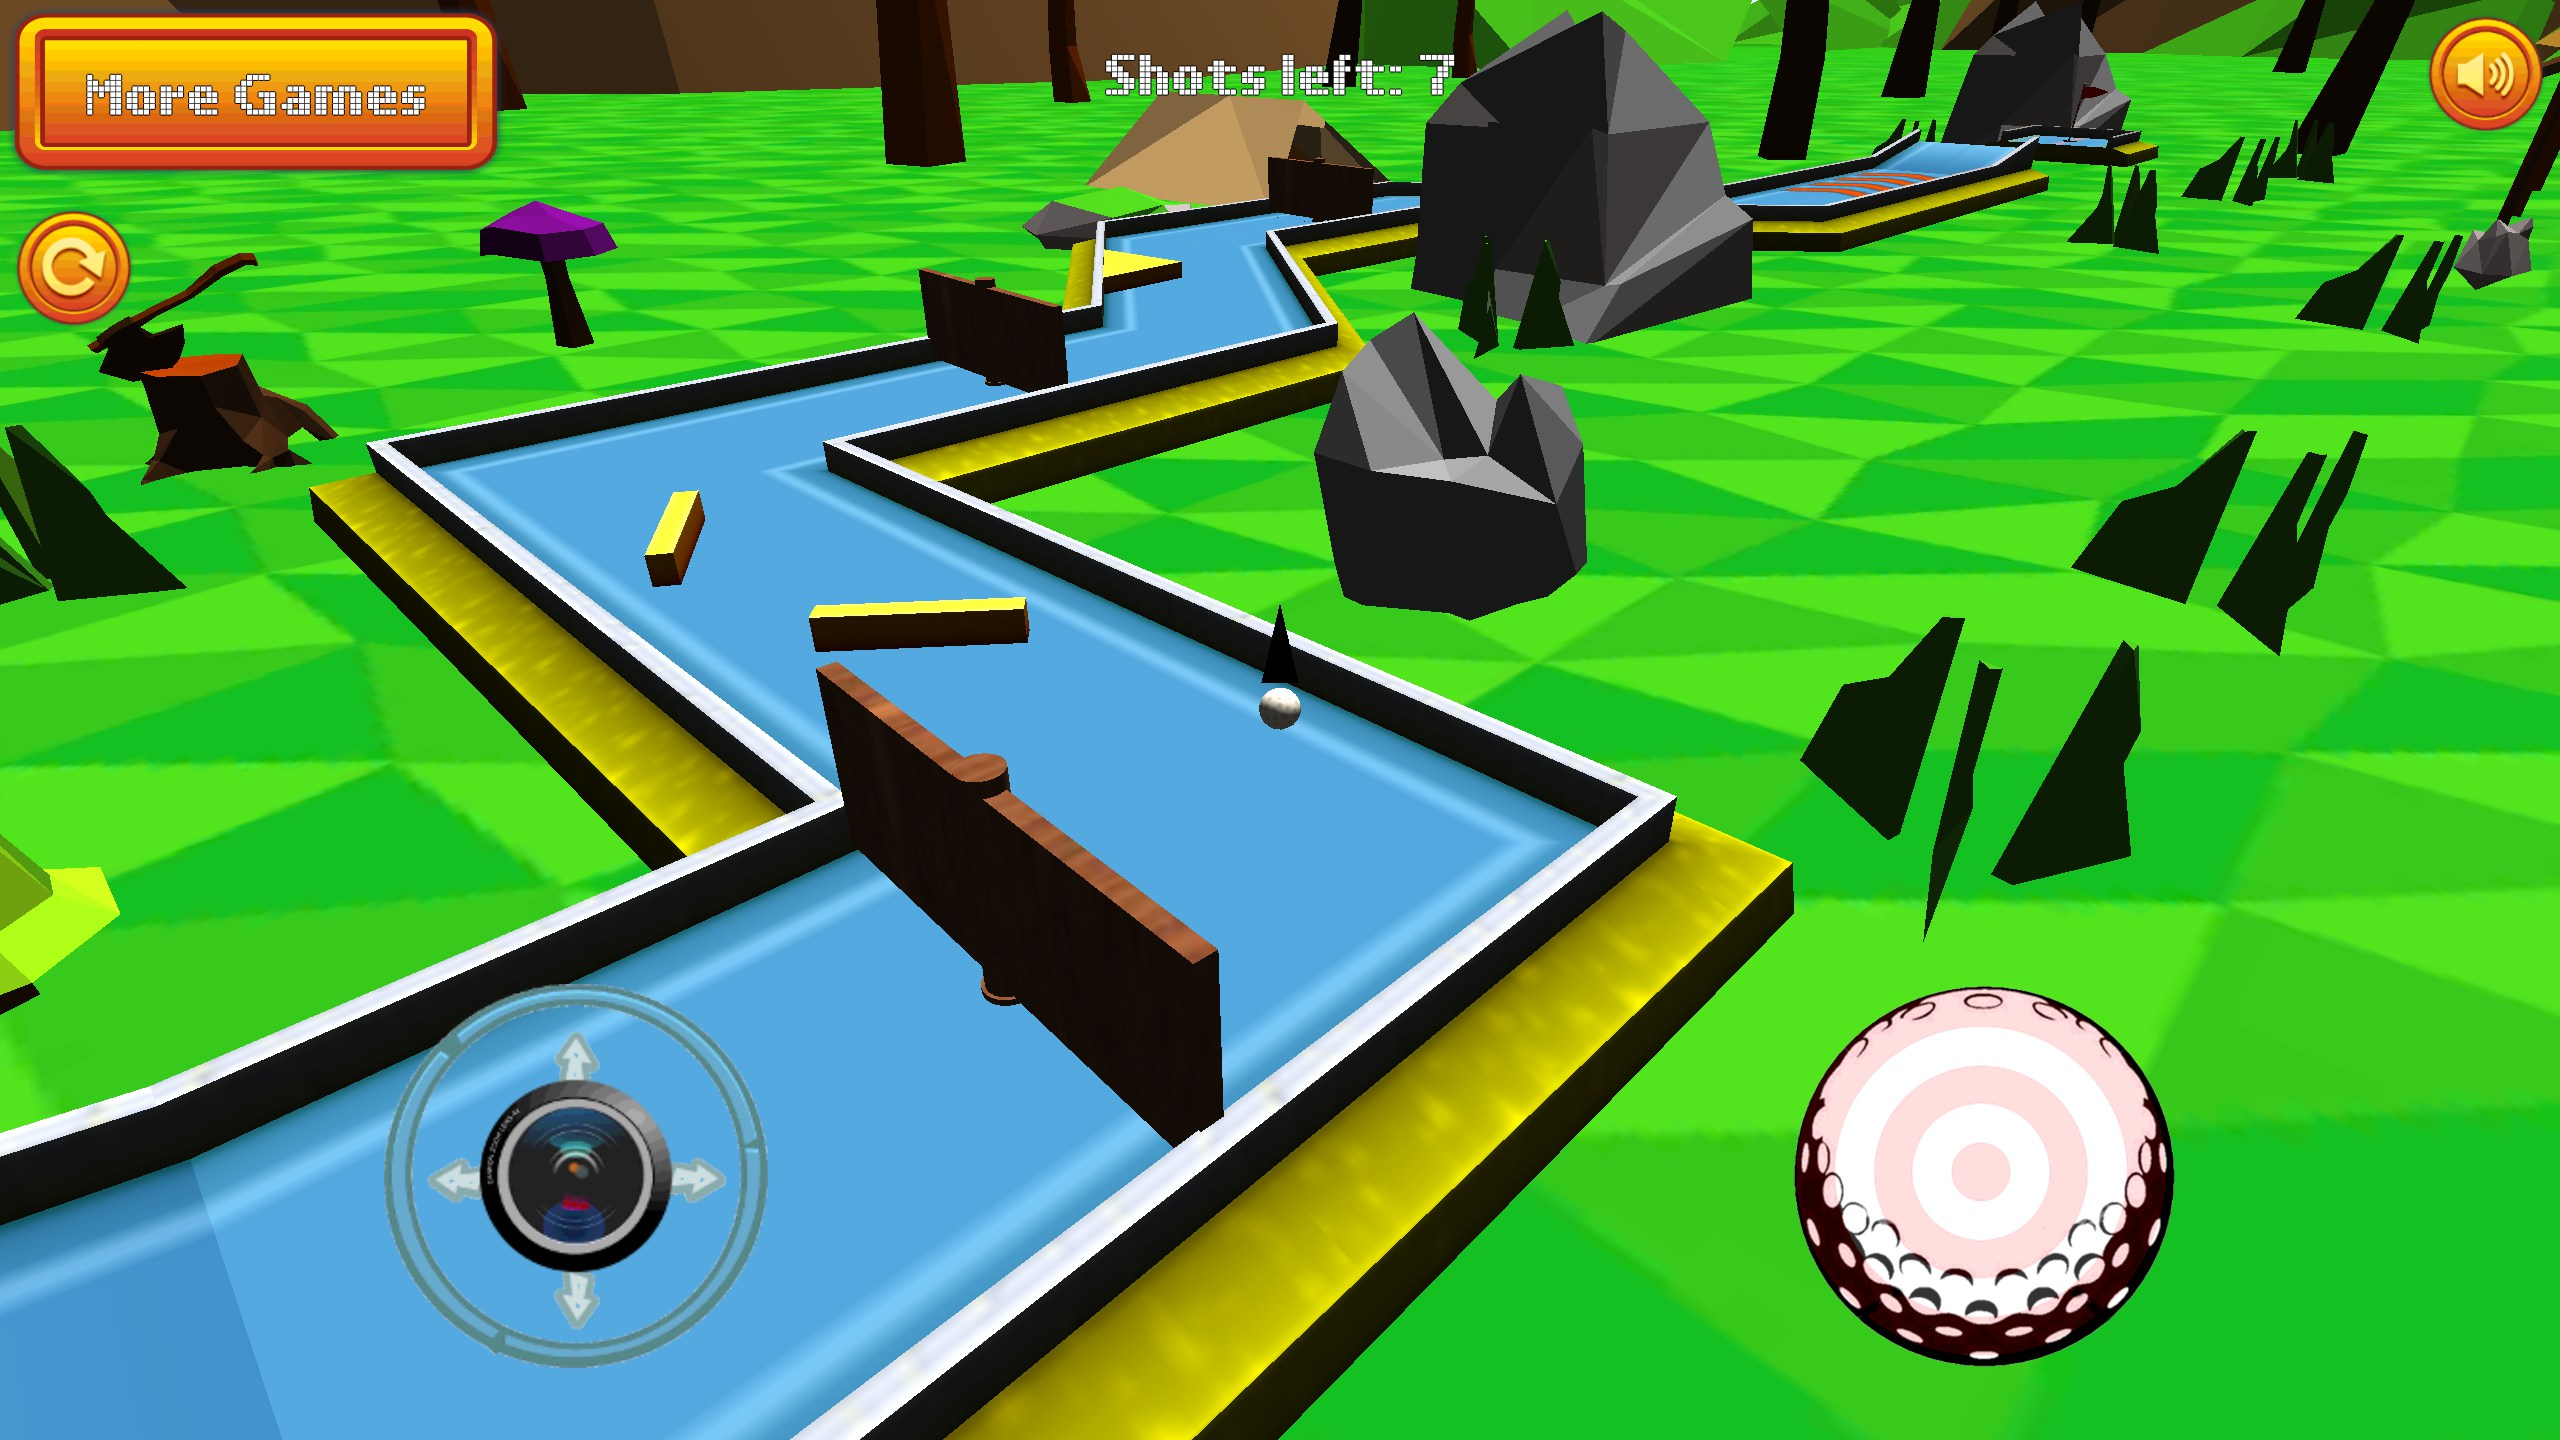 Mini Golf: Retro – Games for Android 2018 – Free download  Mini Golf